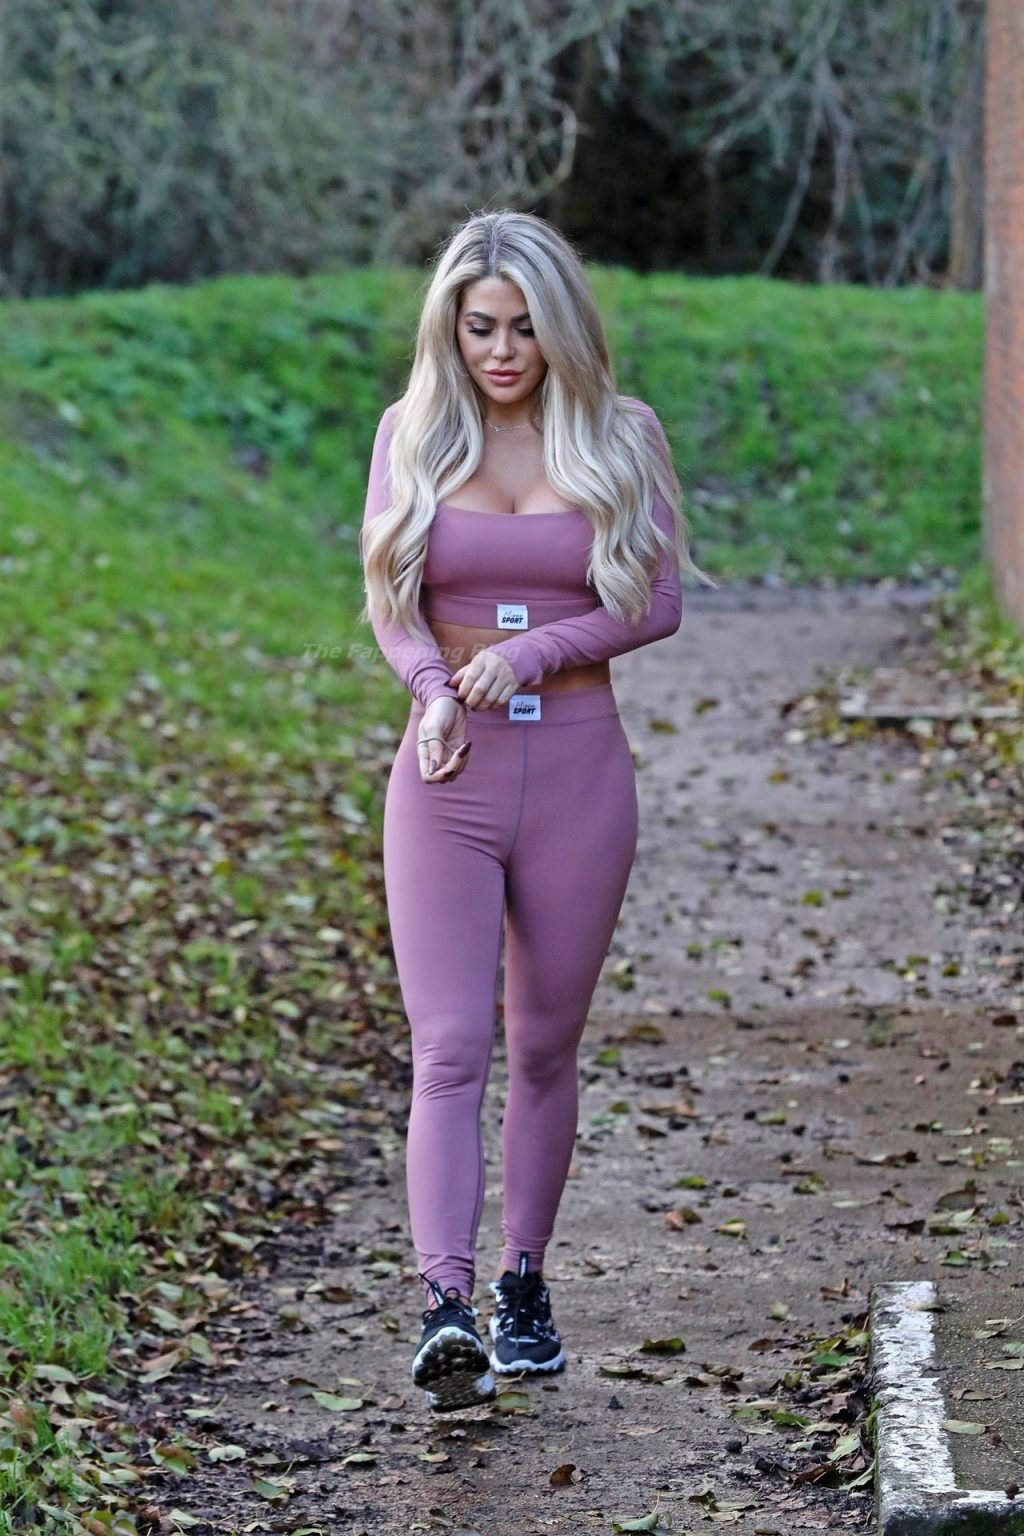 Bianca Gascoigne Displays Her Butt and New Boobs in Kent (9 Photos)